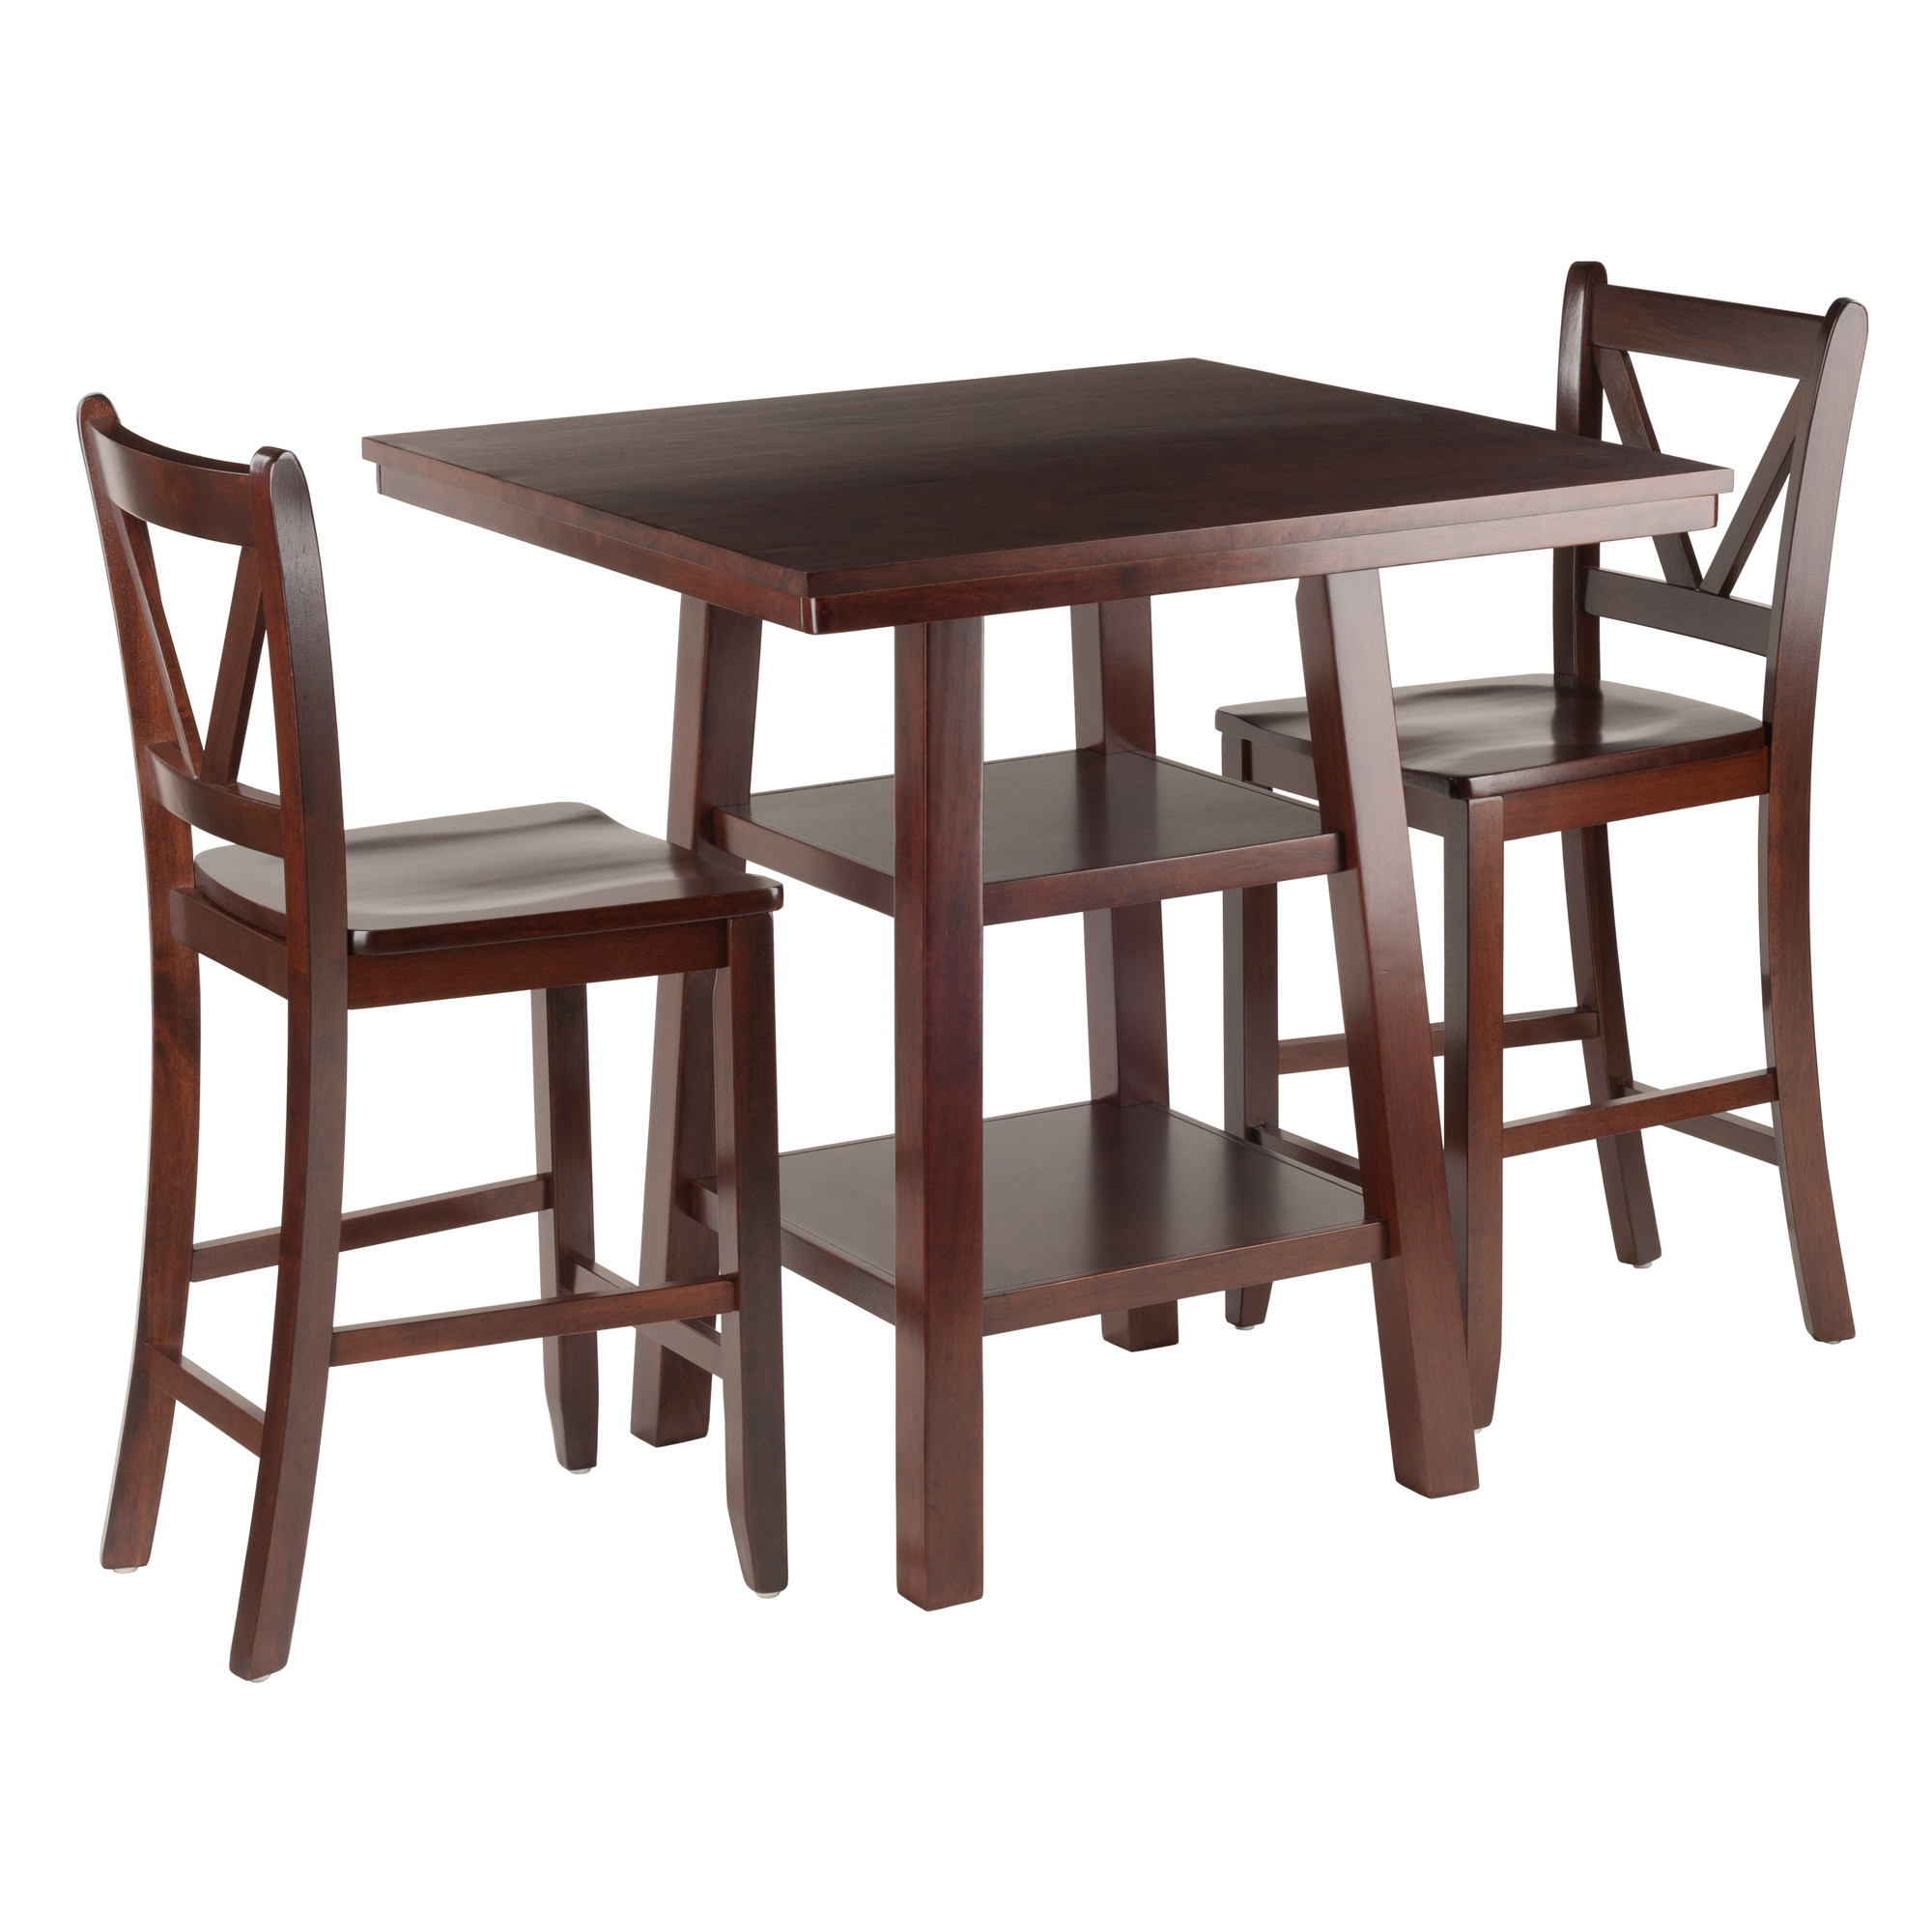 Bettencourt 3 Piece Counter Height Solid Wood Dining Sets For Most Recent Red Barrel Studio Pratt Street 3 Piece Dining Set Rdbs (View 23 of 25)